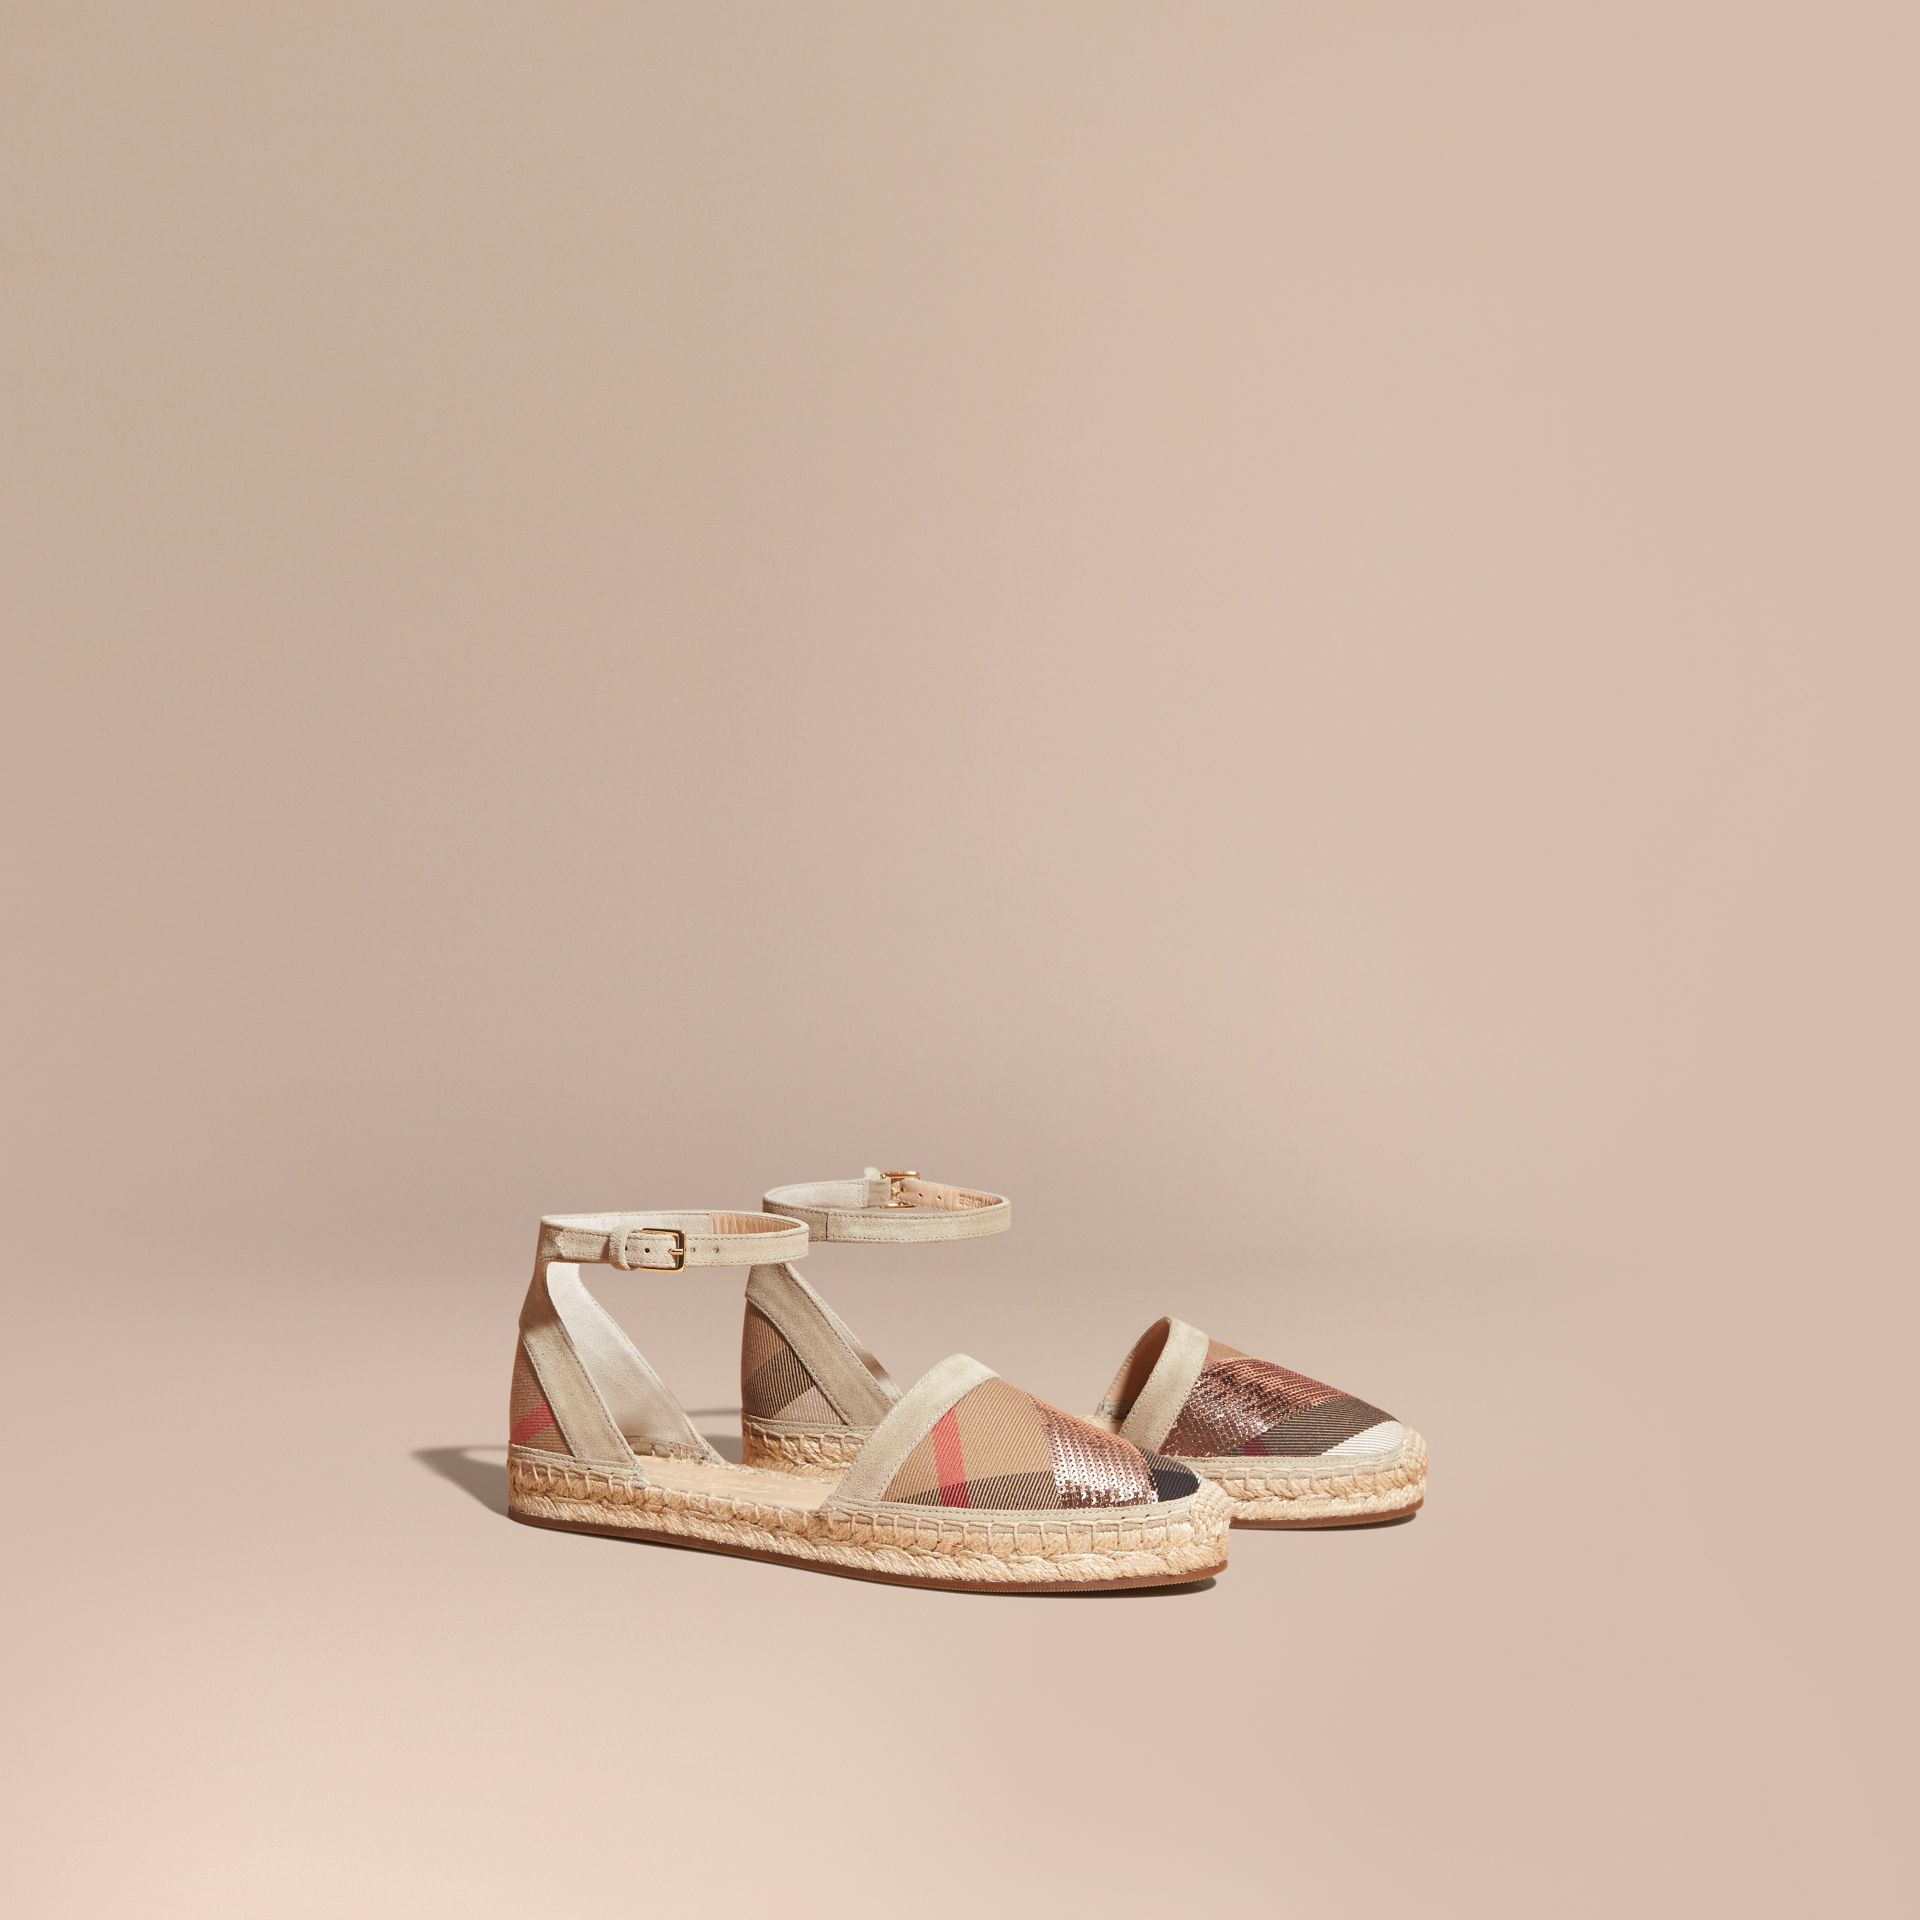 House check/pale pink Sequinned Leather and House Check Espadrille Sandals Check/pale Pink - gallery image 1